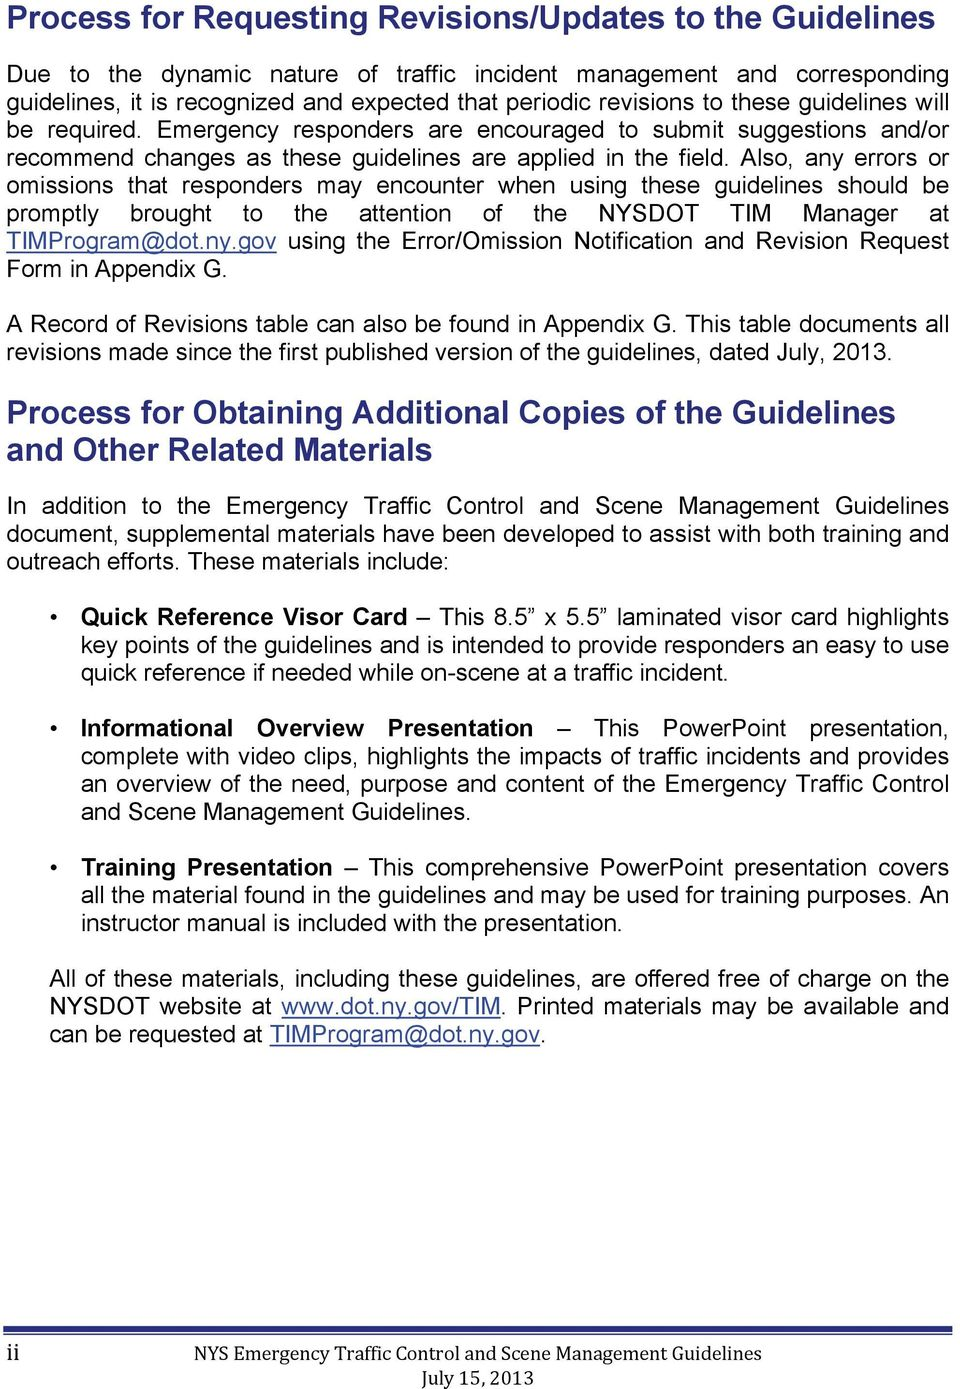 Also, any errors or omissions that responders may encounter when using these guidelines should be promptly brought to the attention of the NYSDOT TIM Manager at TIMProgram@dot.ny.gov using the Error/Omission Notification and Revision Request Form in Appendix G.